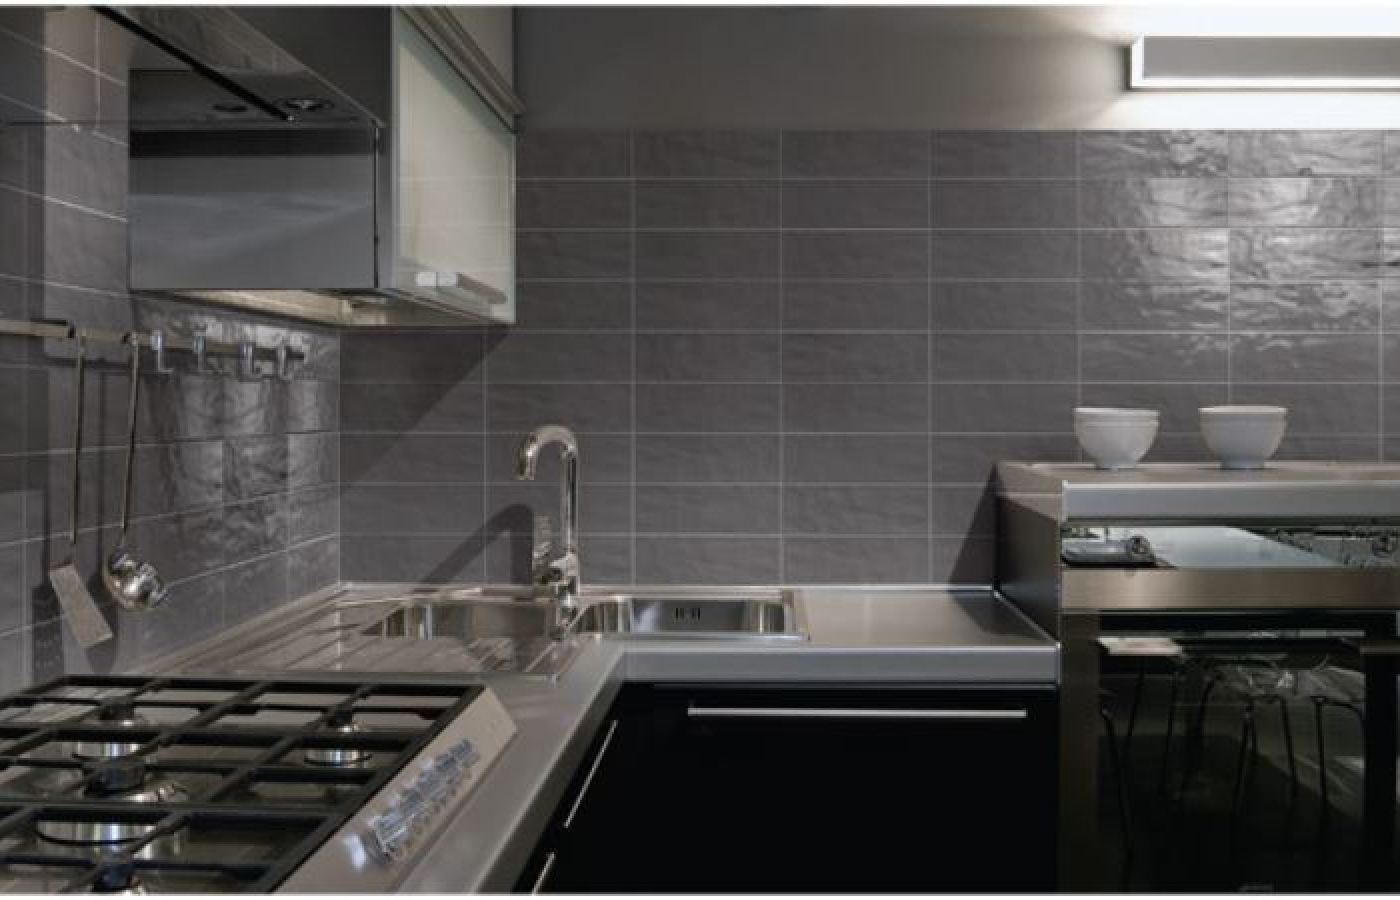 Marlow Textured Ceramic Subway Tiles